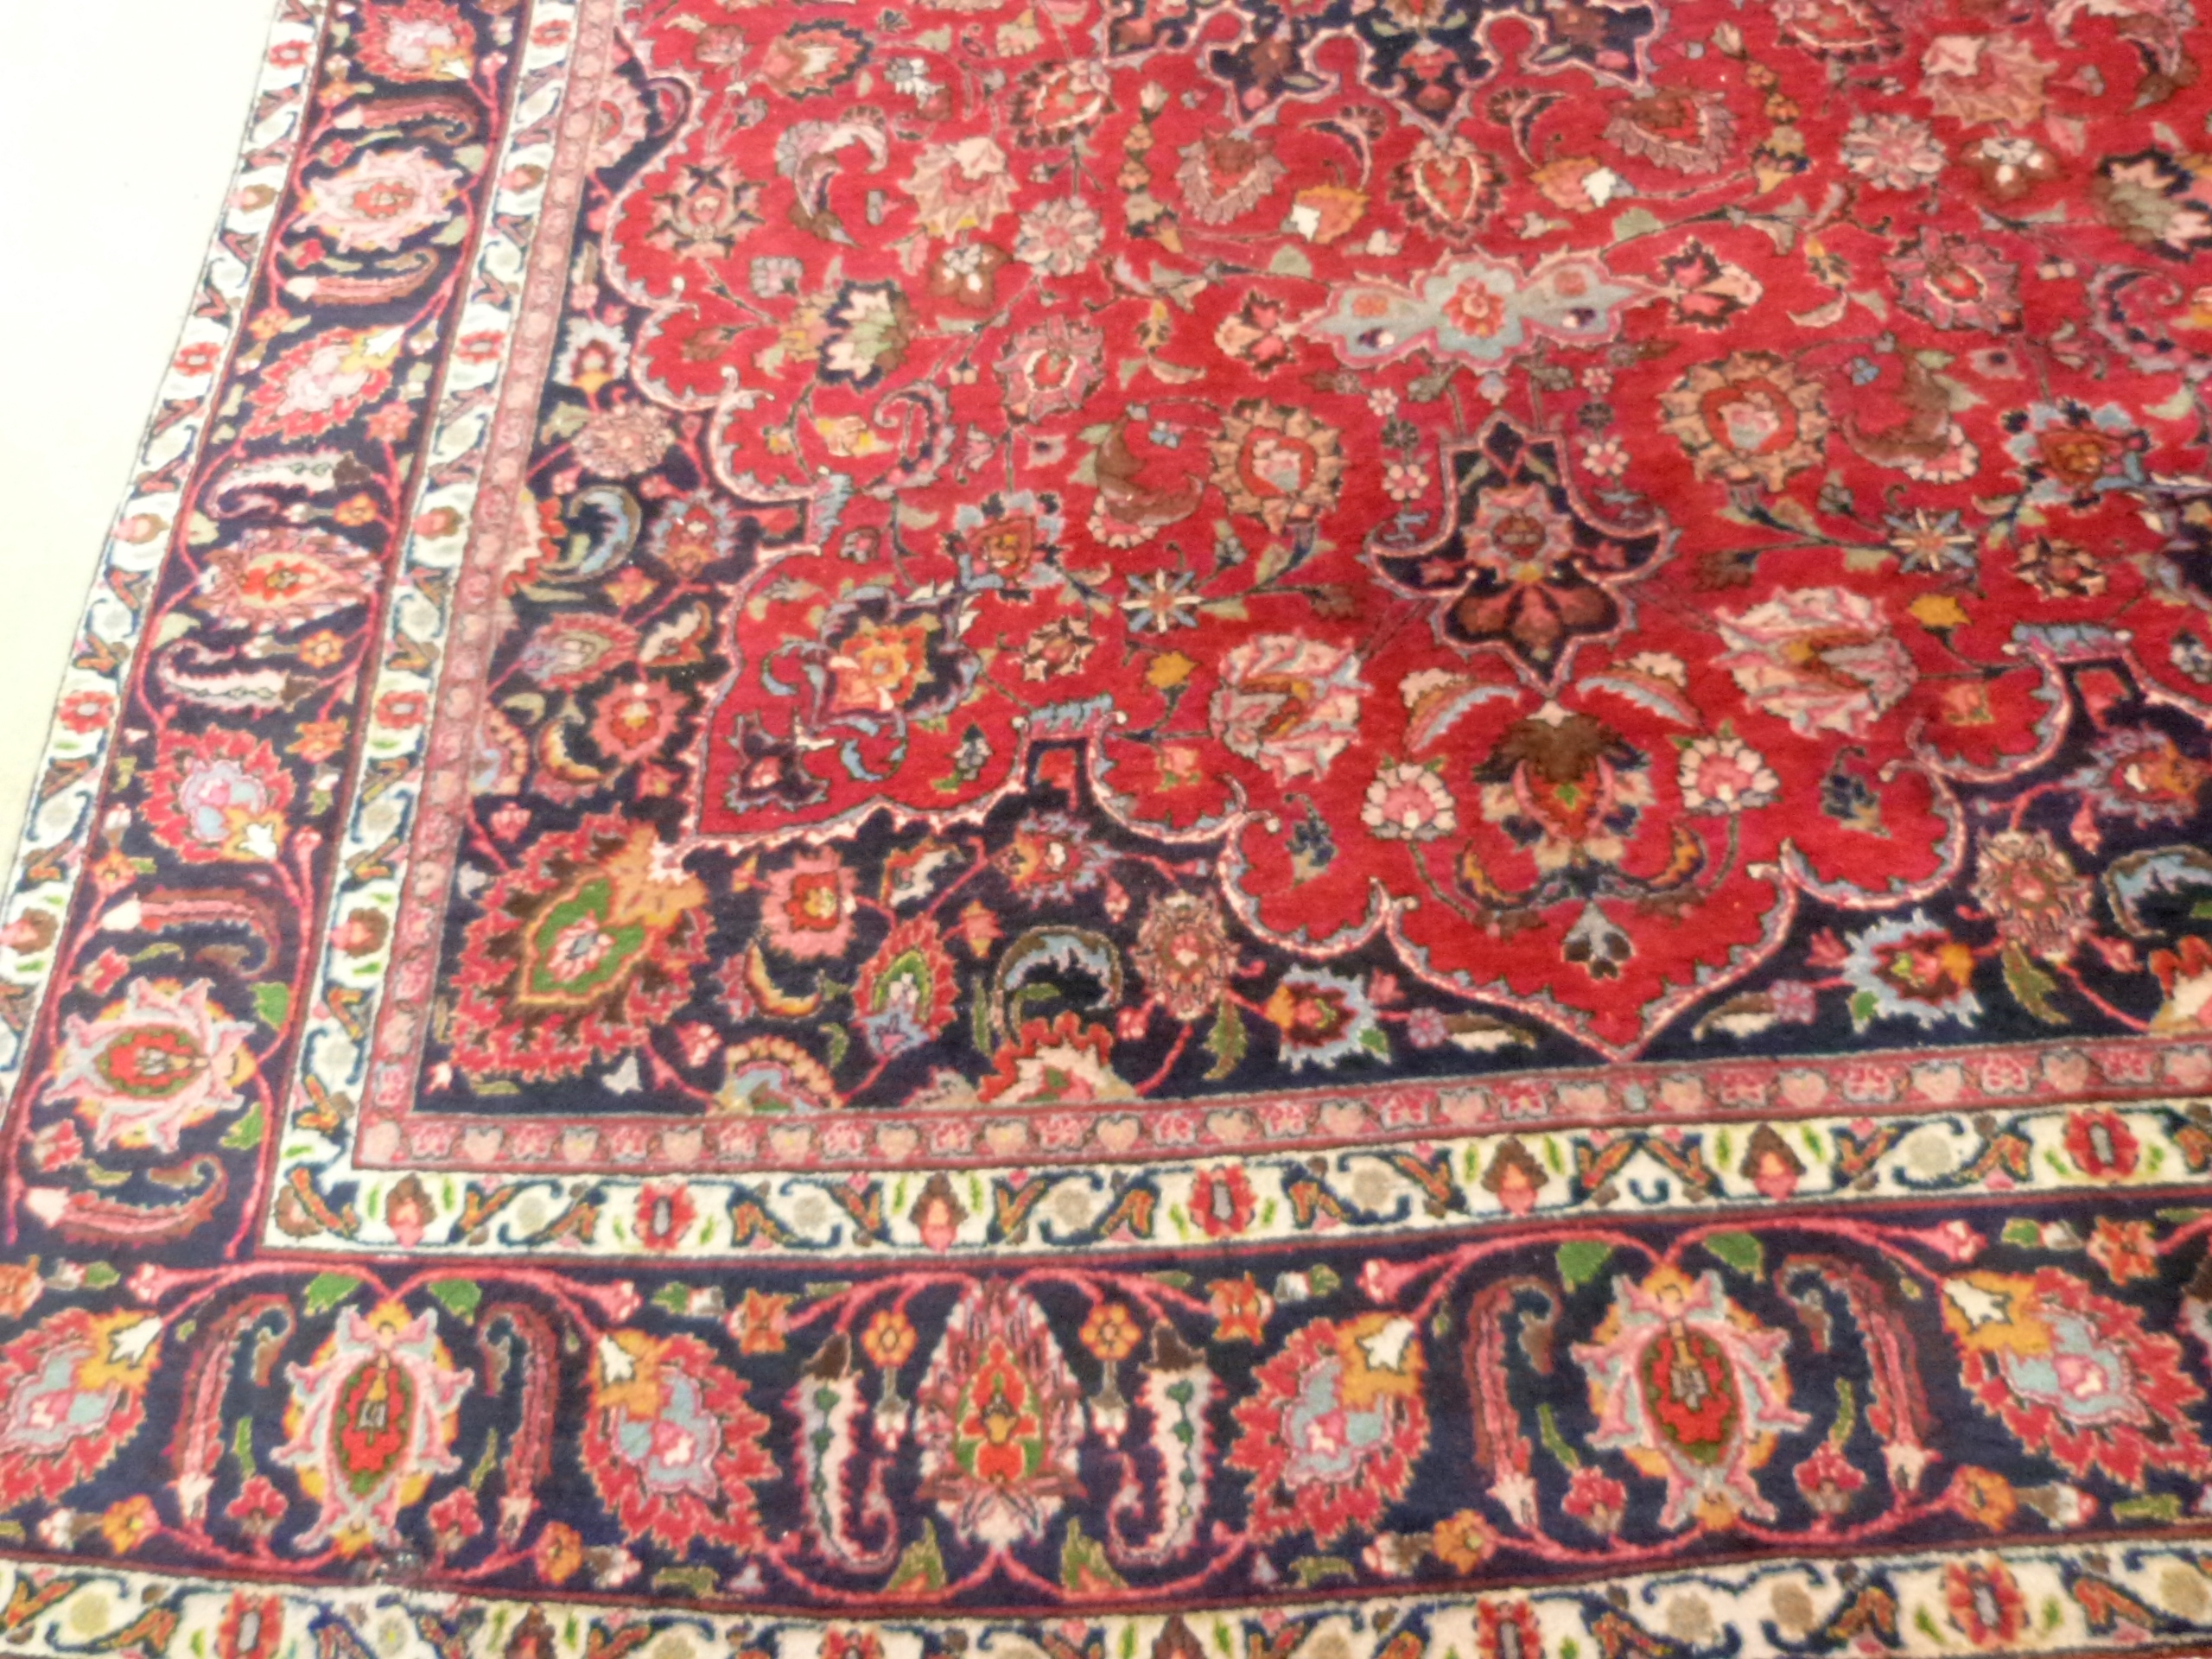 Large red ground Persian Mashad Carpet, mutlicoloured with traditional design 388cm x 270cm approx - Image 2 of 7